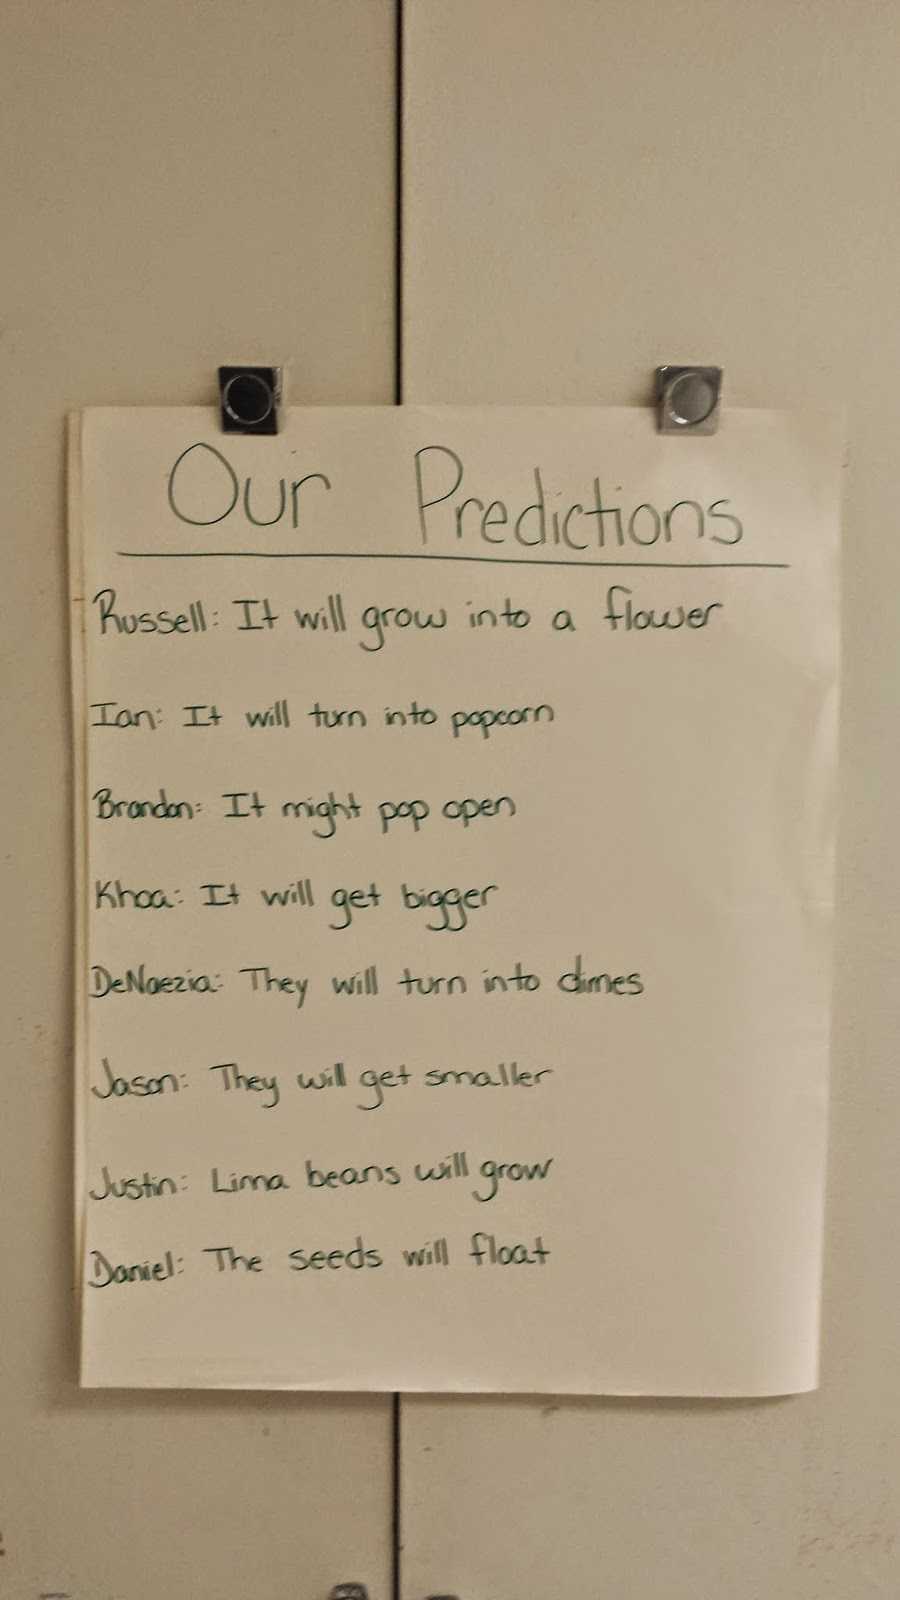 photo predictions the class made